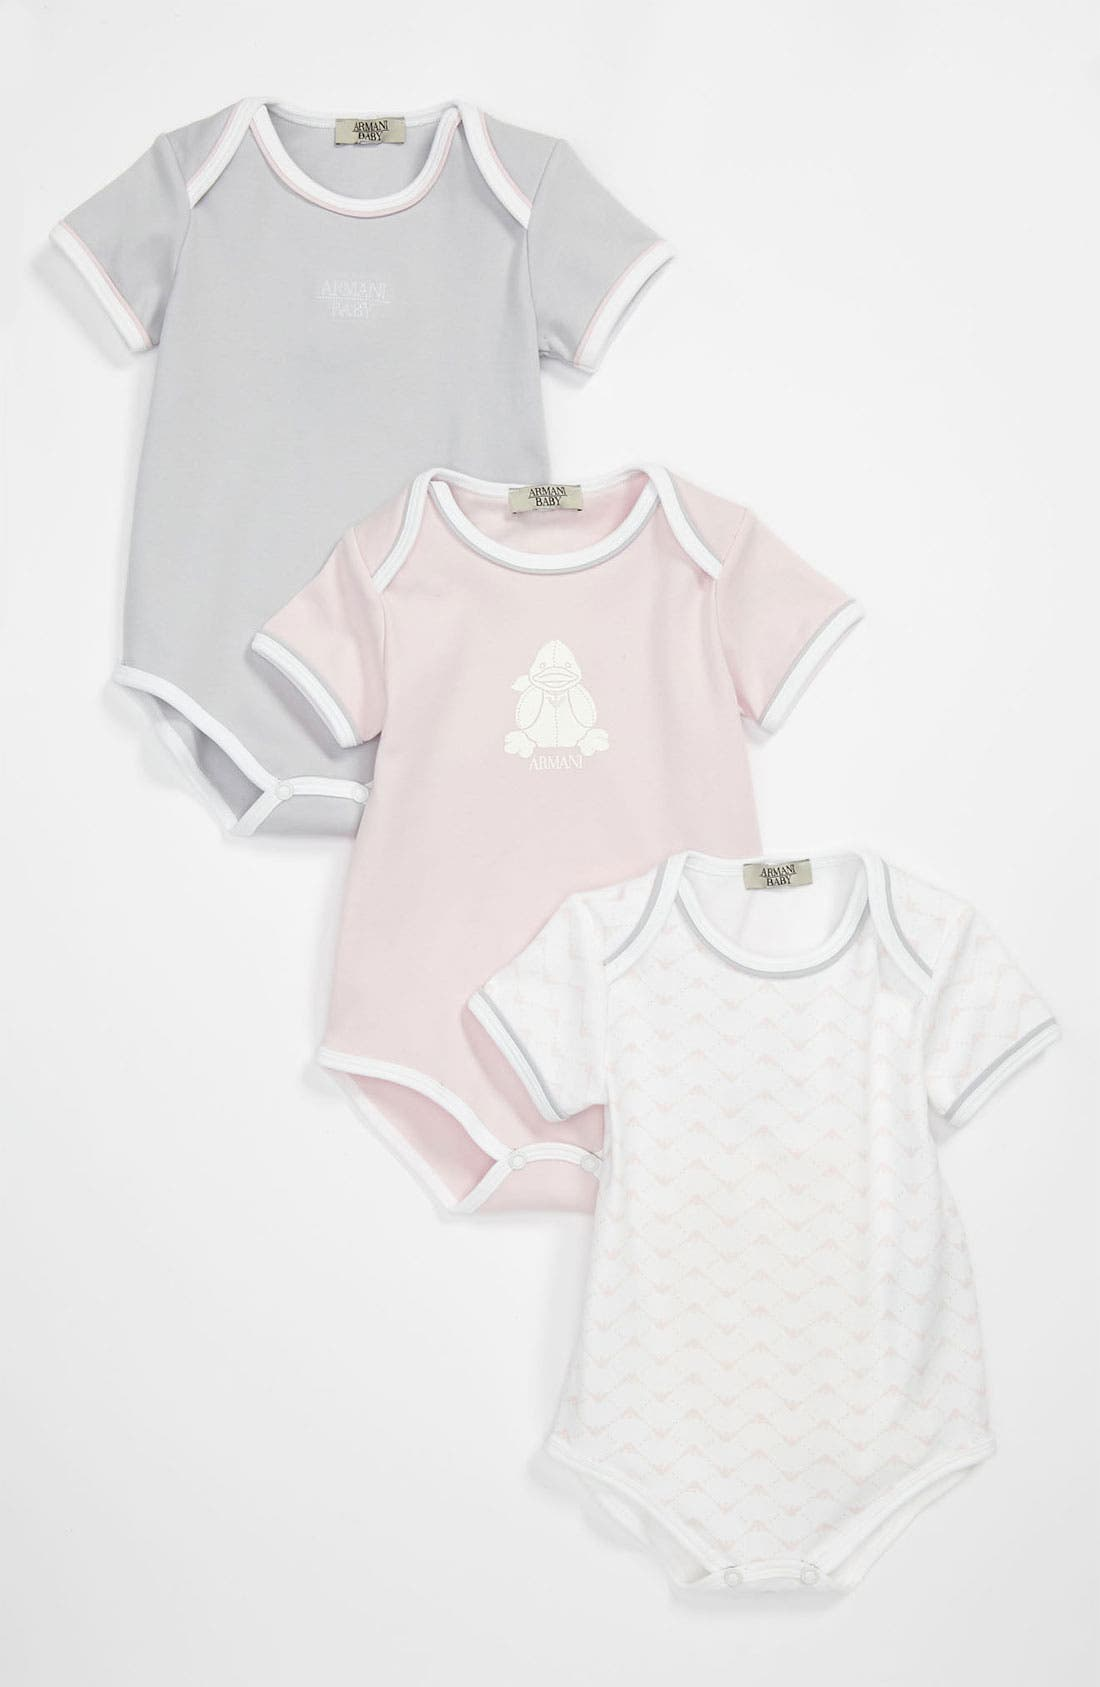 Main Image - Armani Junior Bodysuit Set (Baby)